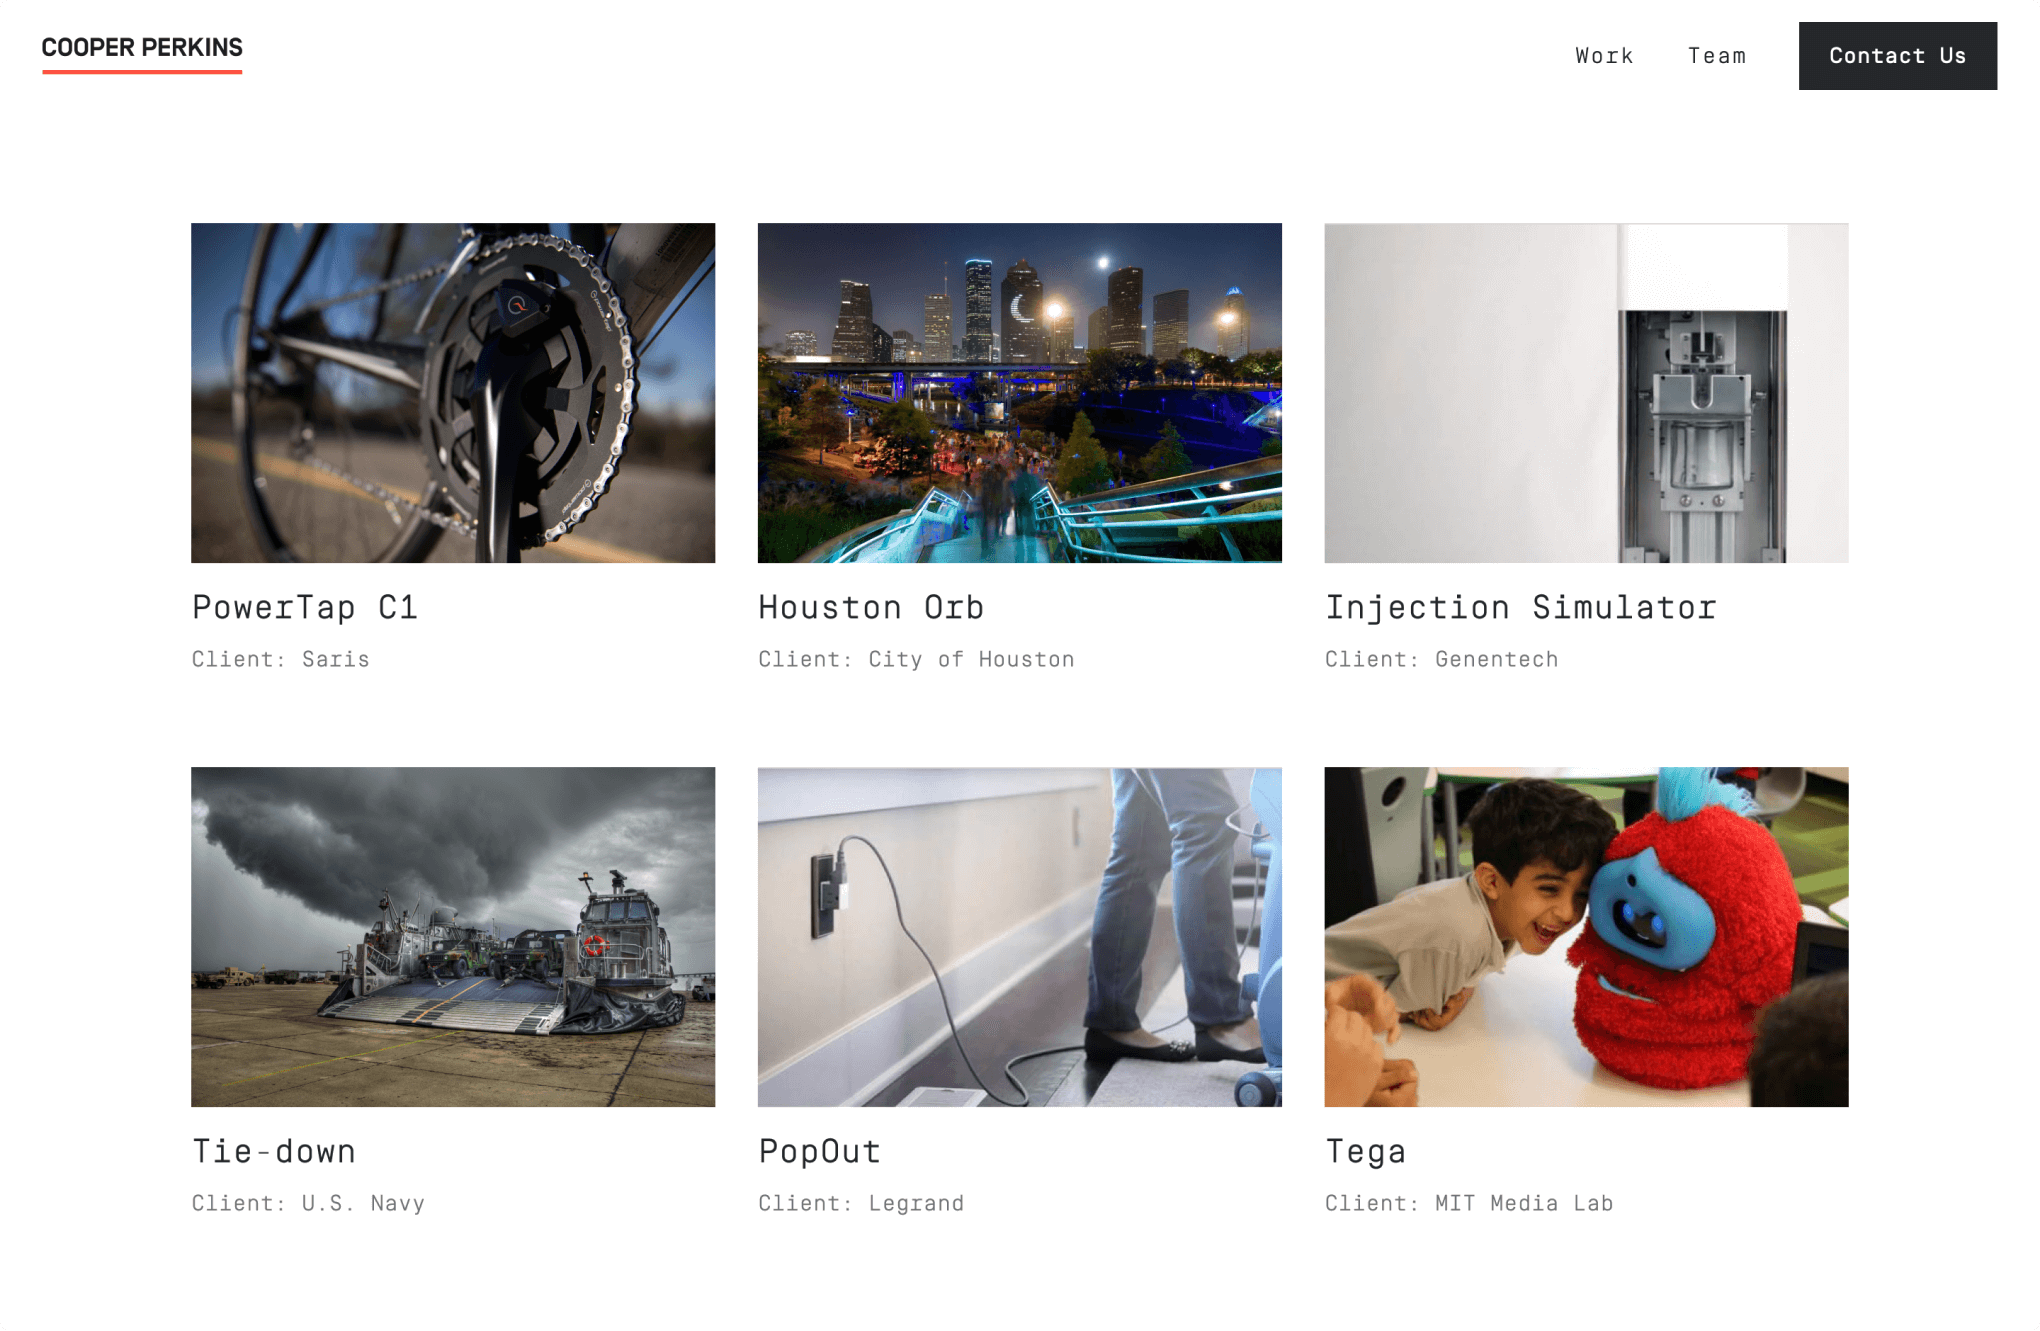 The final design for Cooper Perkins' Work page highlights projects they have completed.